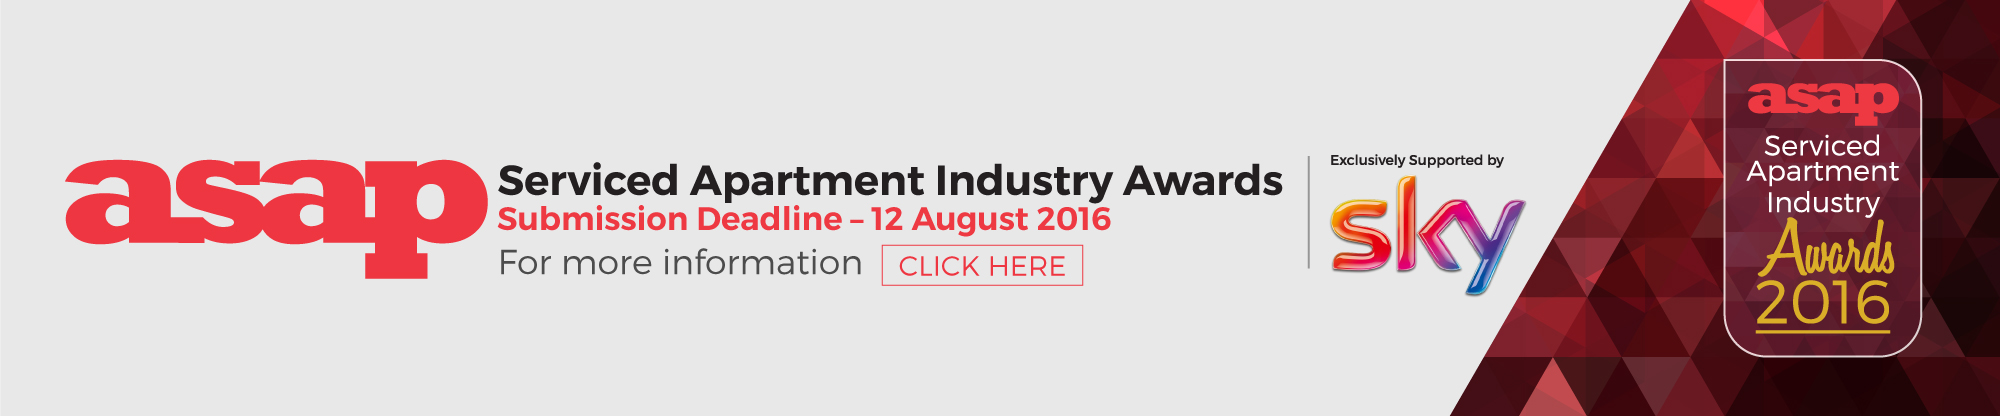 ASAP Serviced Apartment Industry Awards 2016